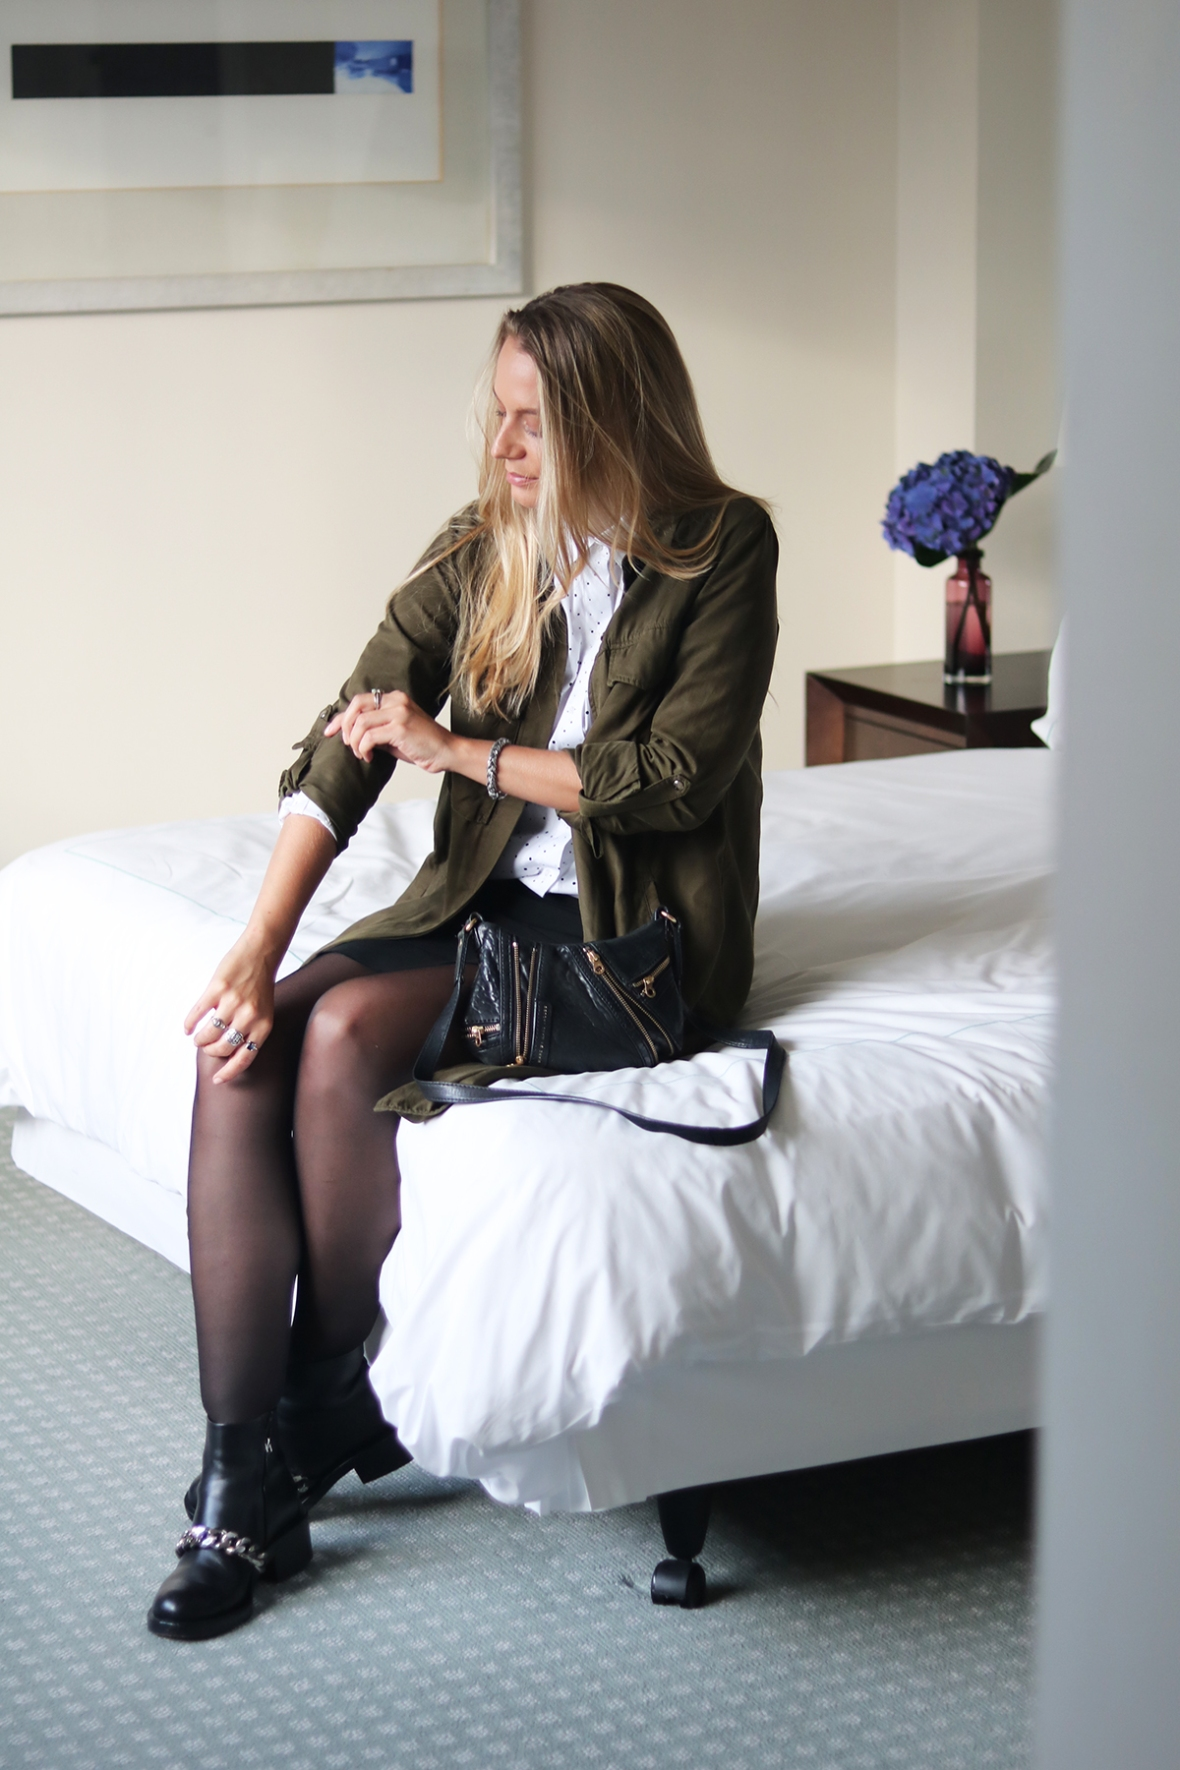 Fashion blogger Review Hotel London One Aldwych Covent Garden